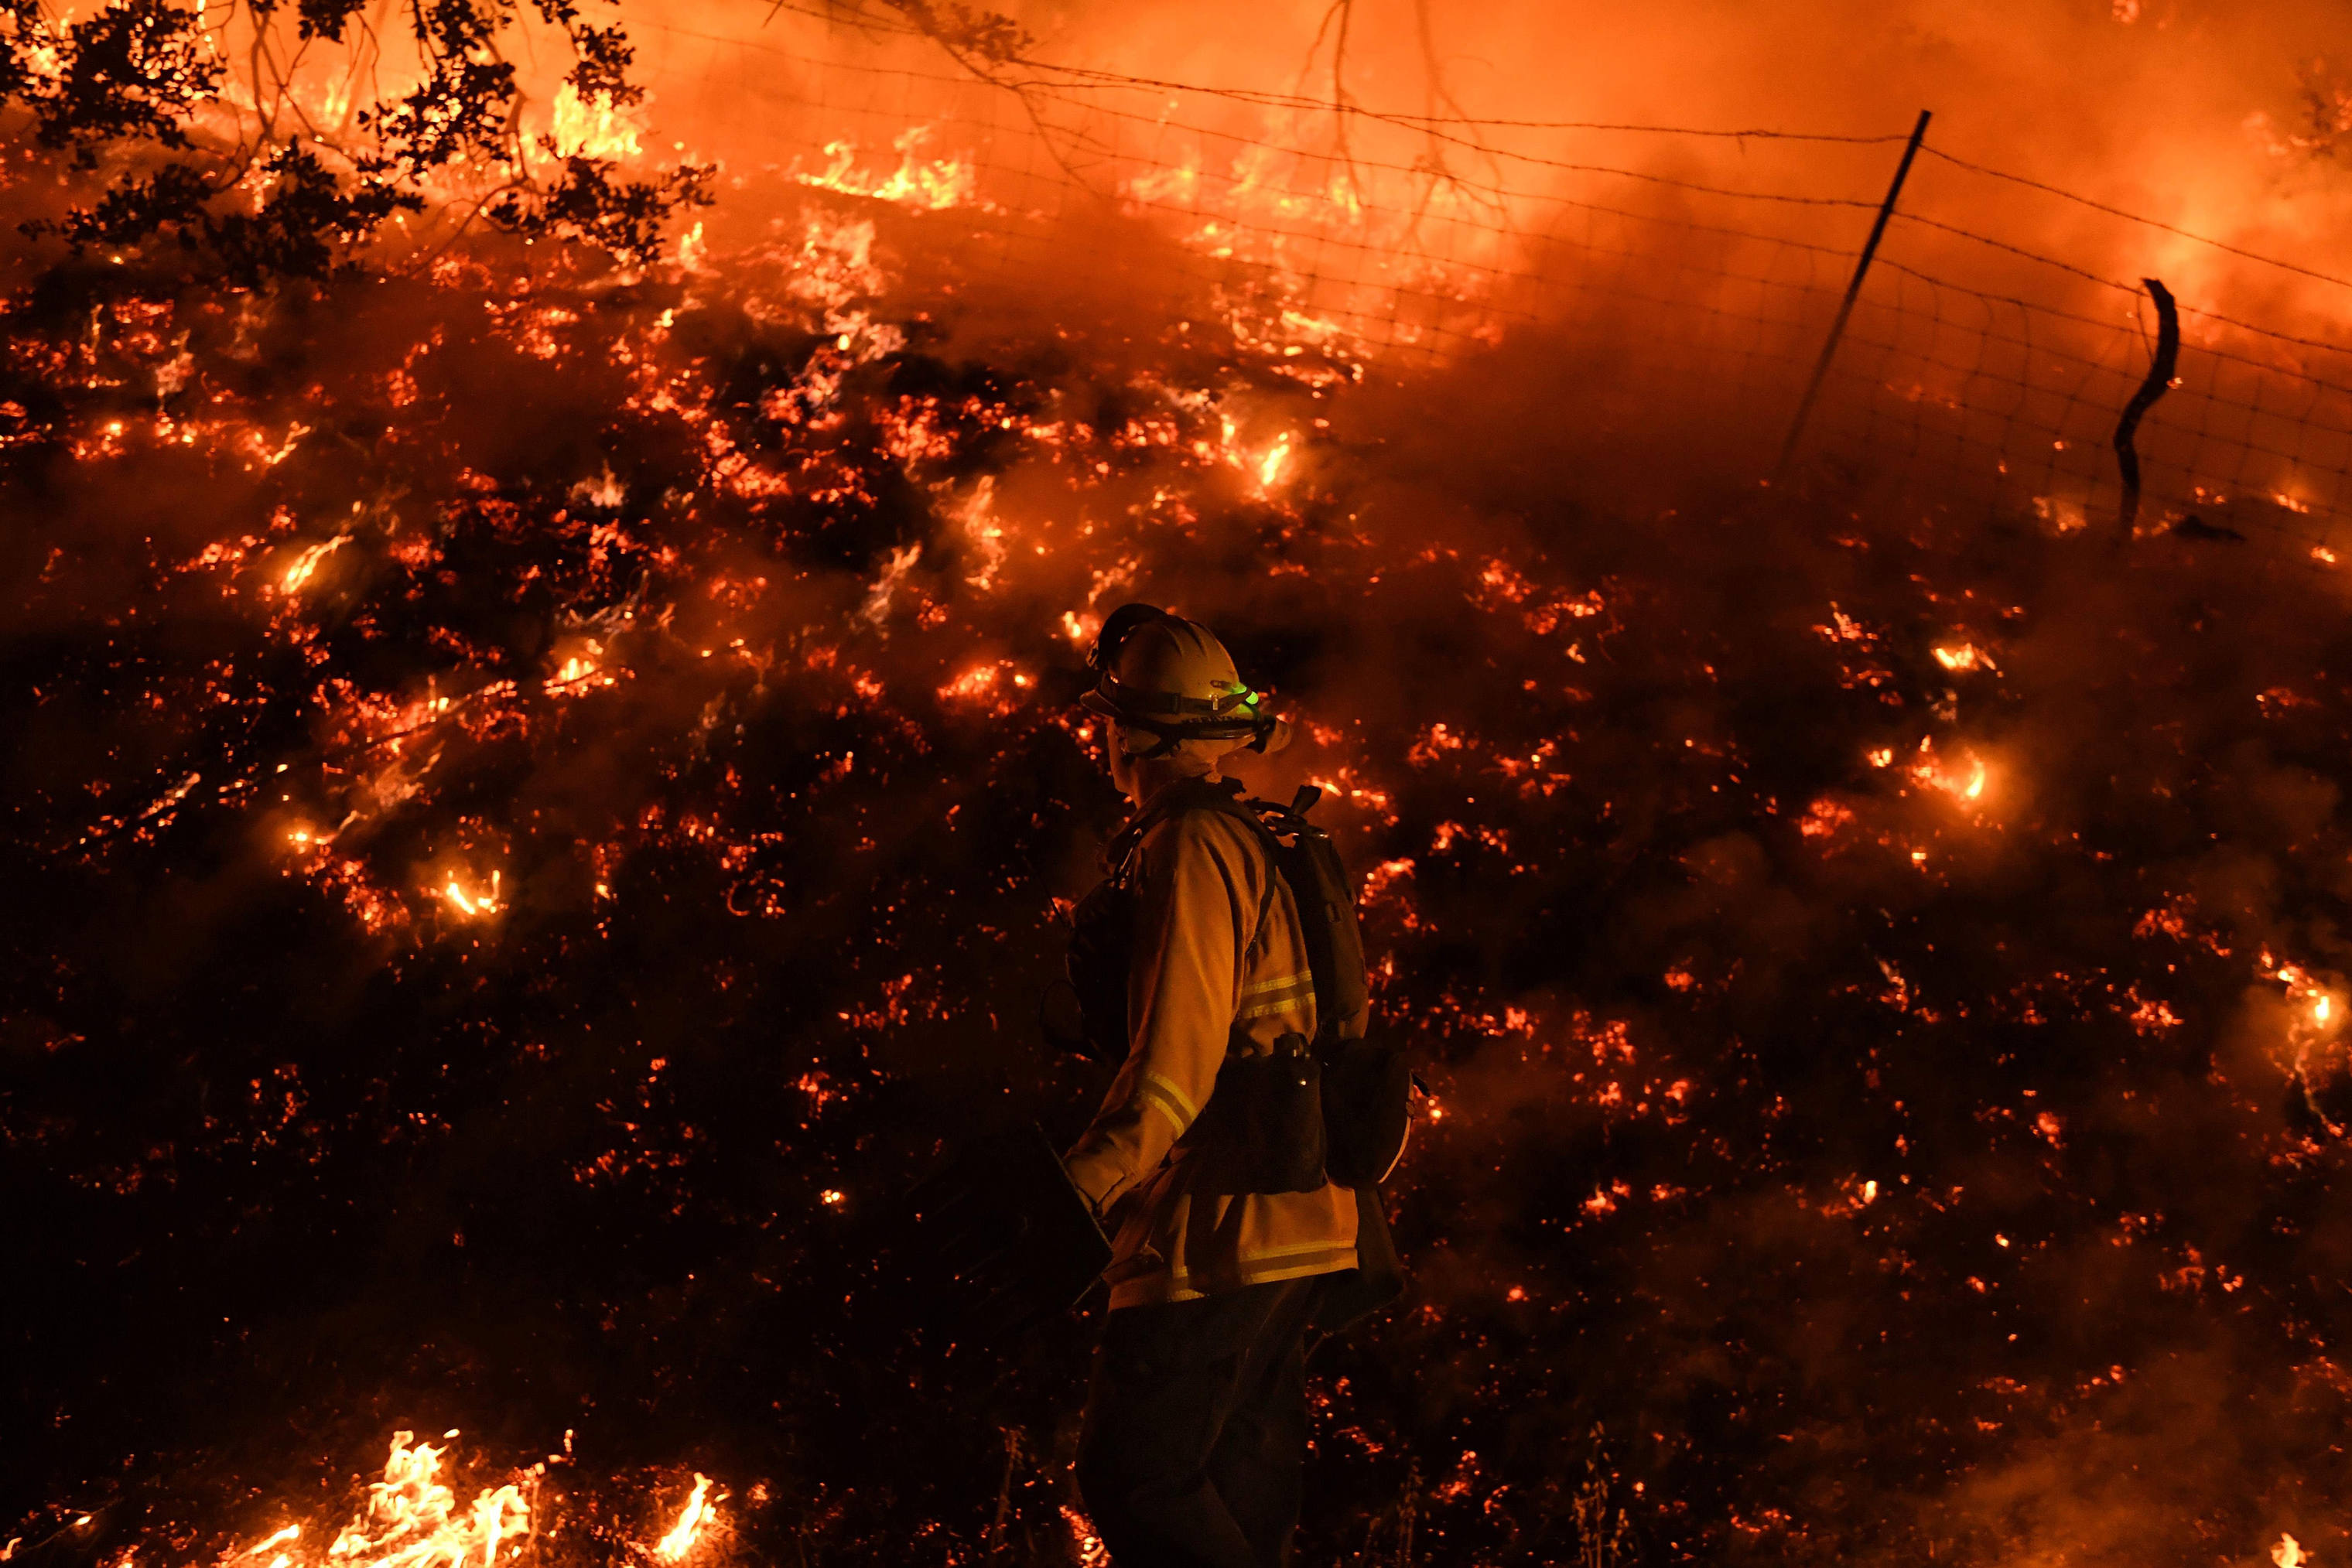 Firefighters conduct a controlled burn to defend houses against flames from the Ranch fire, as it continues to spreads towards the town of Upper Lake, Calif. on Aug. 2.